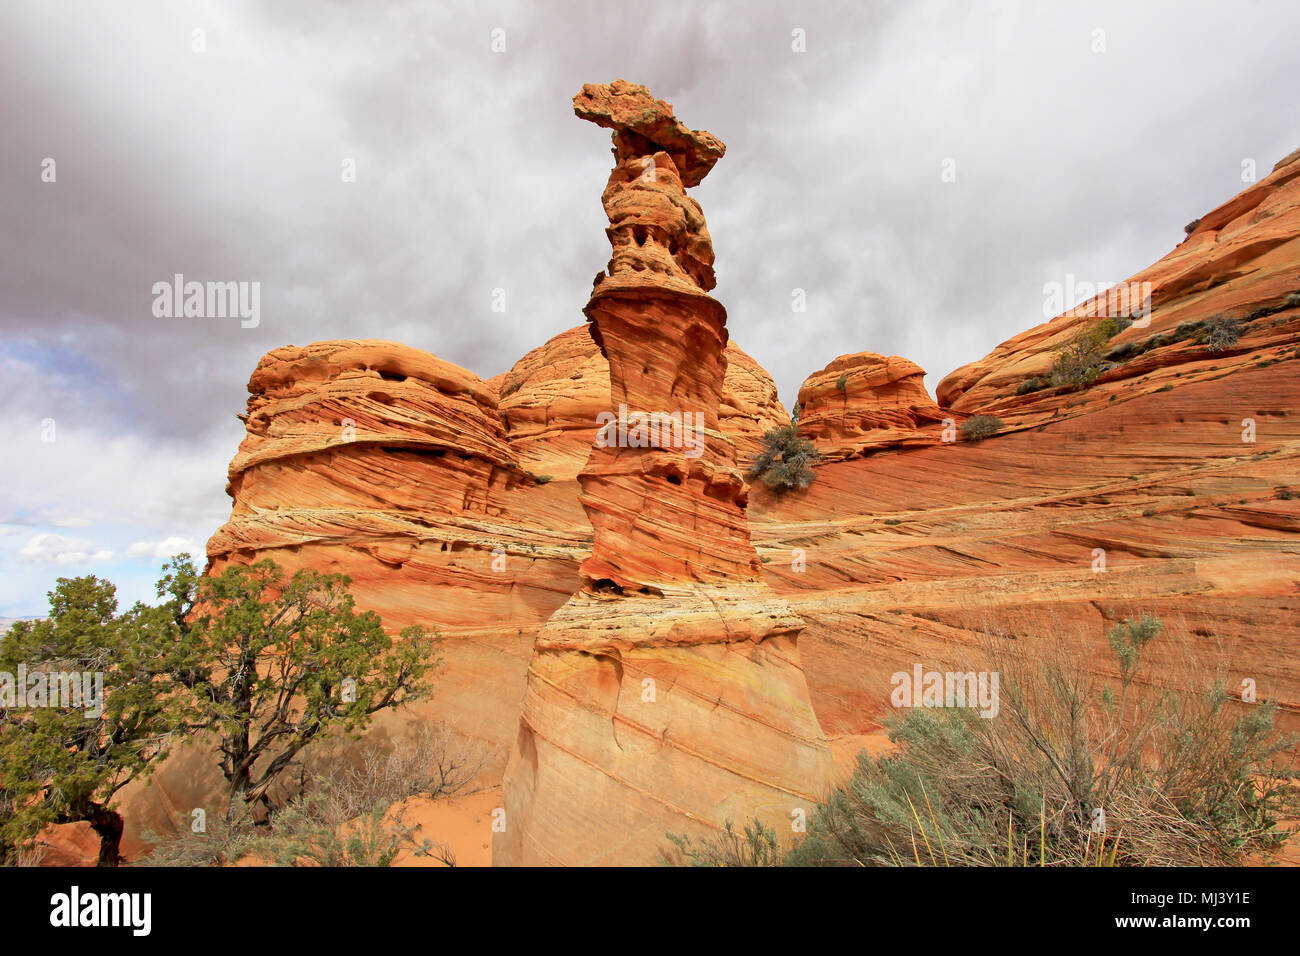 Chess Queen, a rock formation near The Wave at Coyote Buttes South CBS, Paria Canyon Vermillion Cliffs Wilderness, Arizona - Stock Image